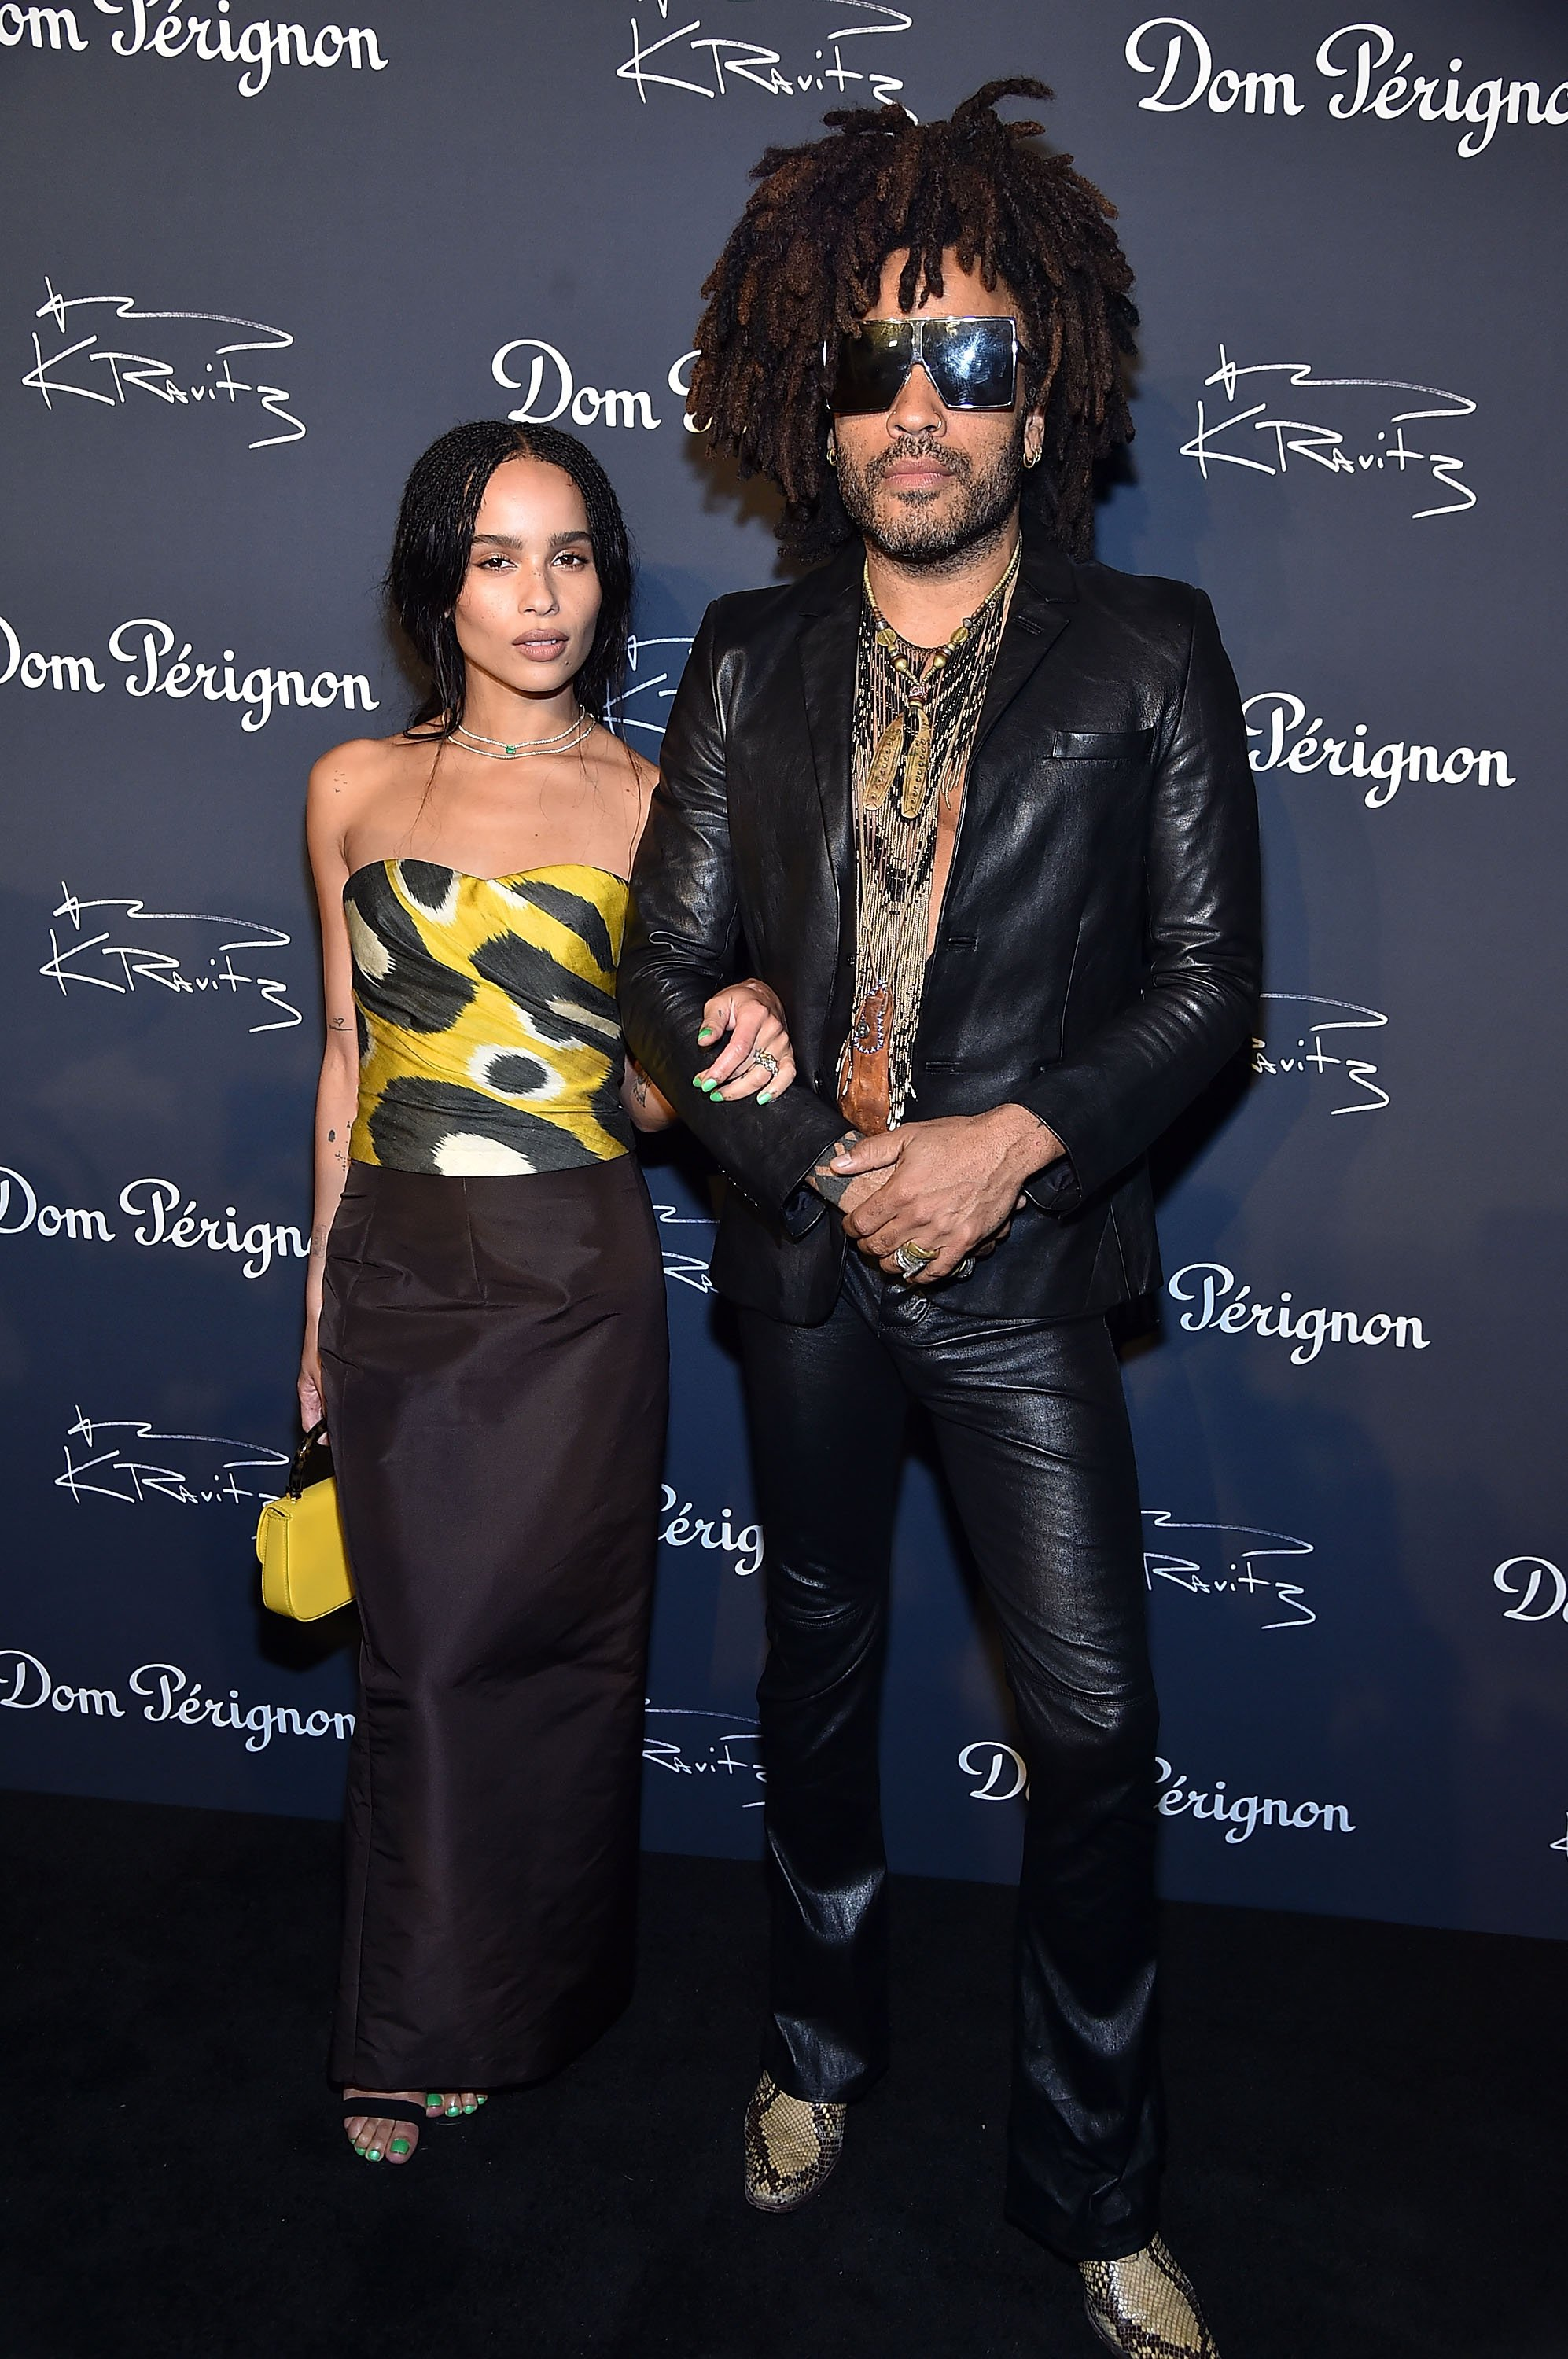 Zoe Kravitz and Lenny Kravitz attend the Dom Perignon & Lenny Kravitz: 'Assemblage' Exhibition at Skylight Modern on September 28, 2018, in New York City. | Source: Getty Images.